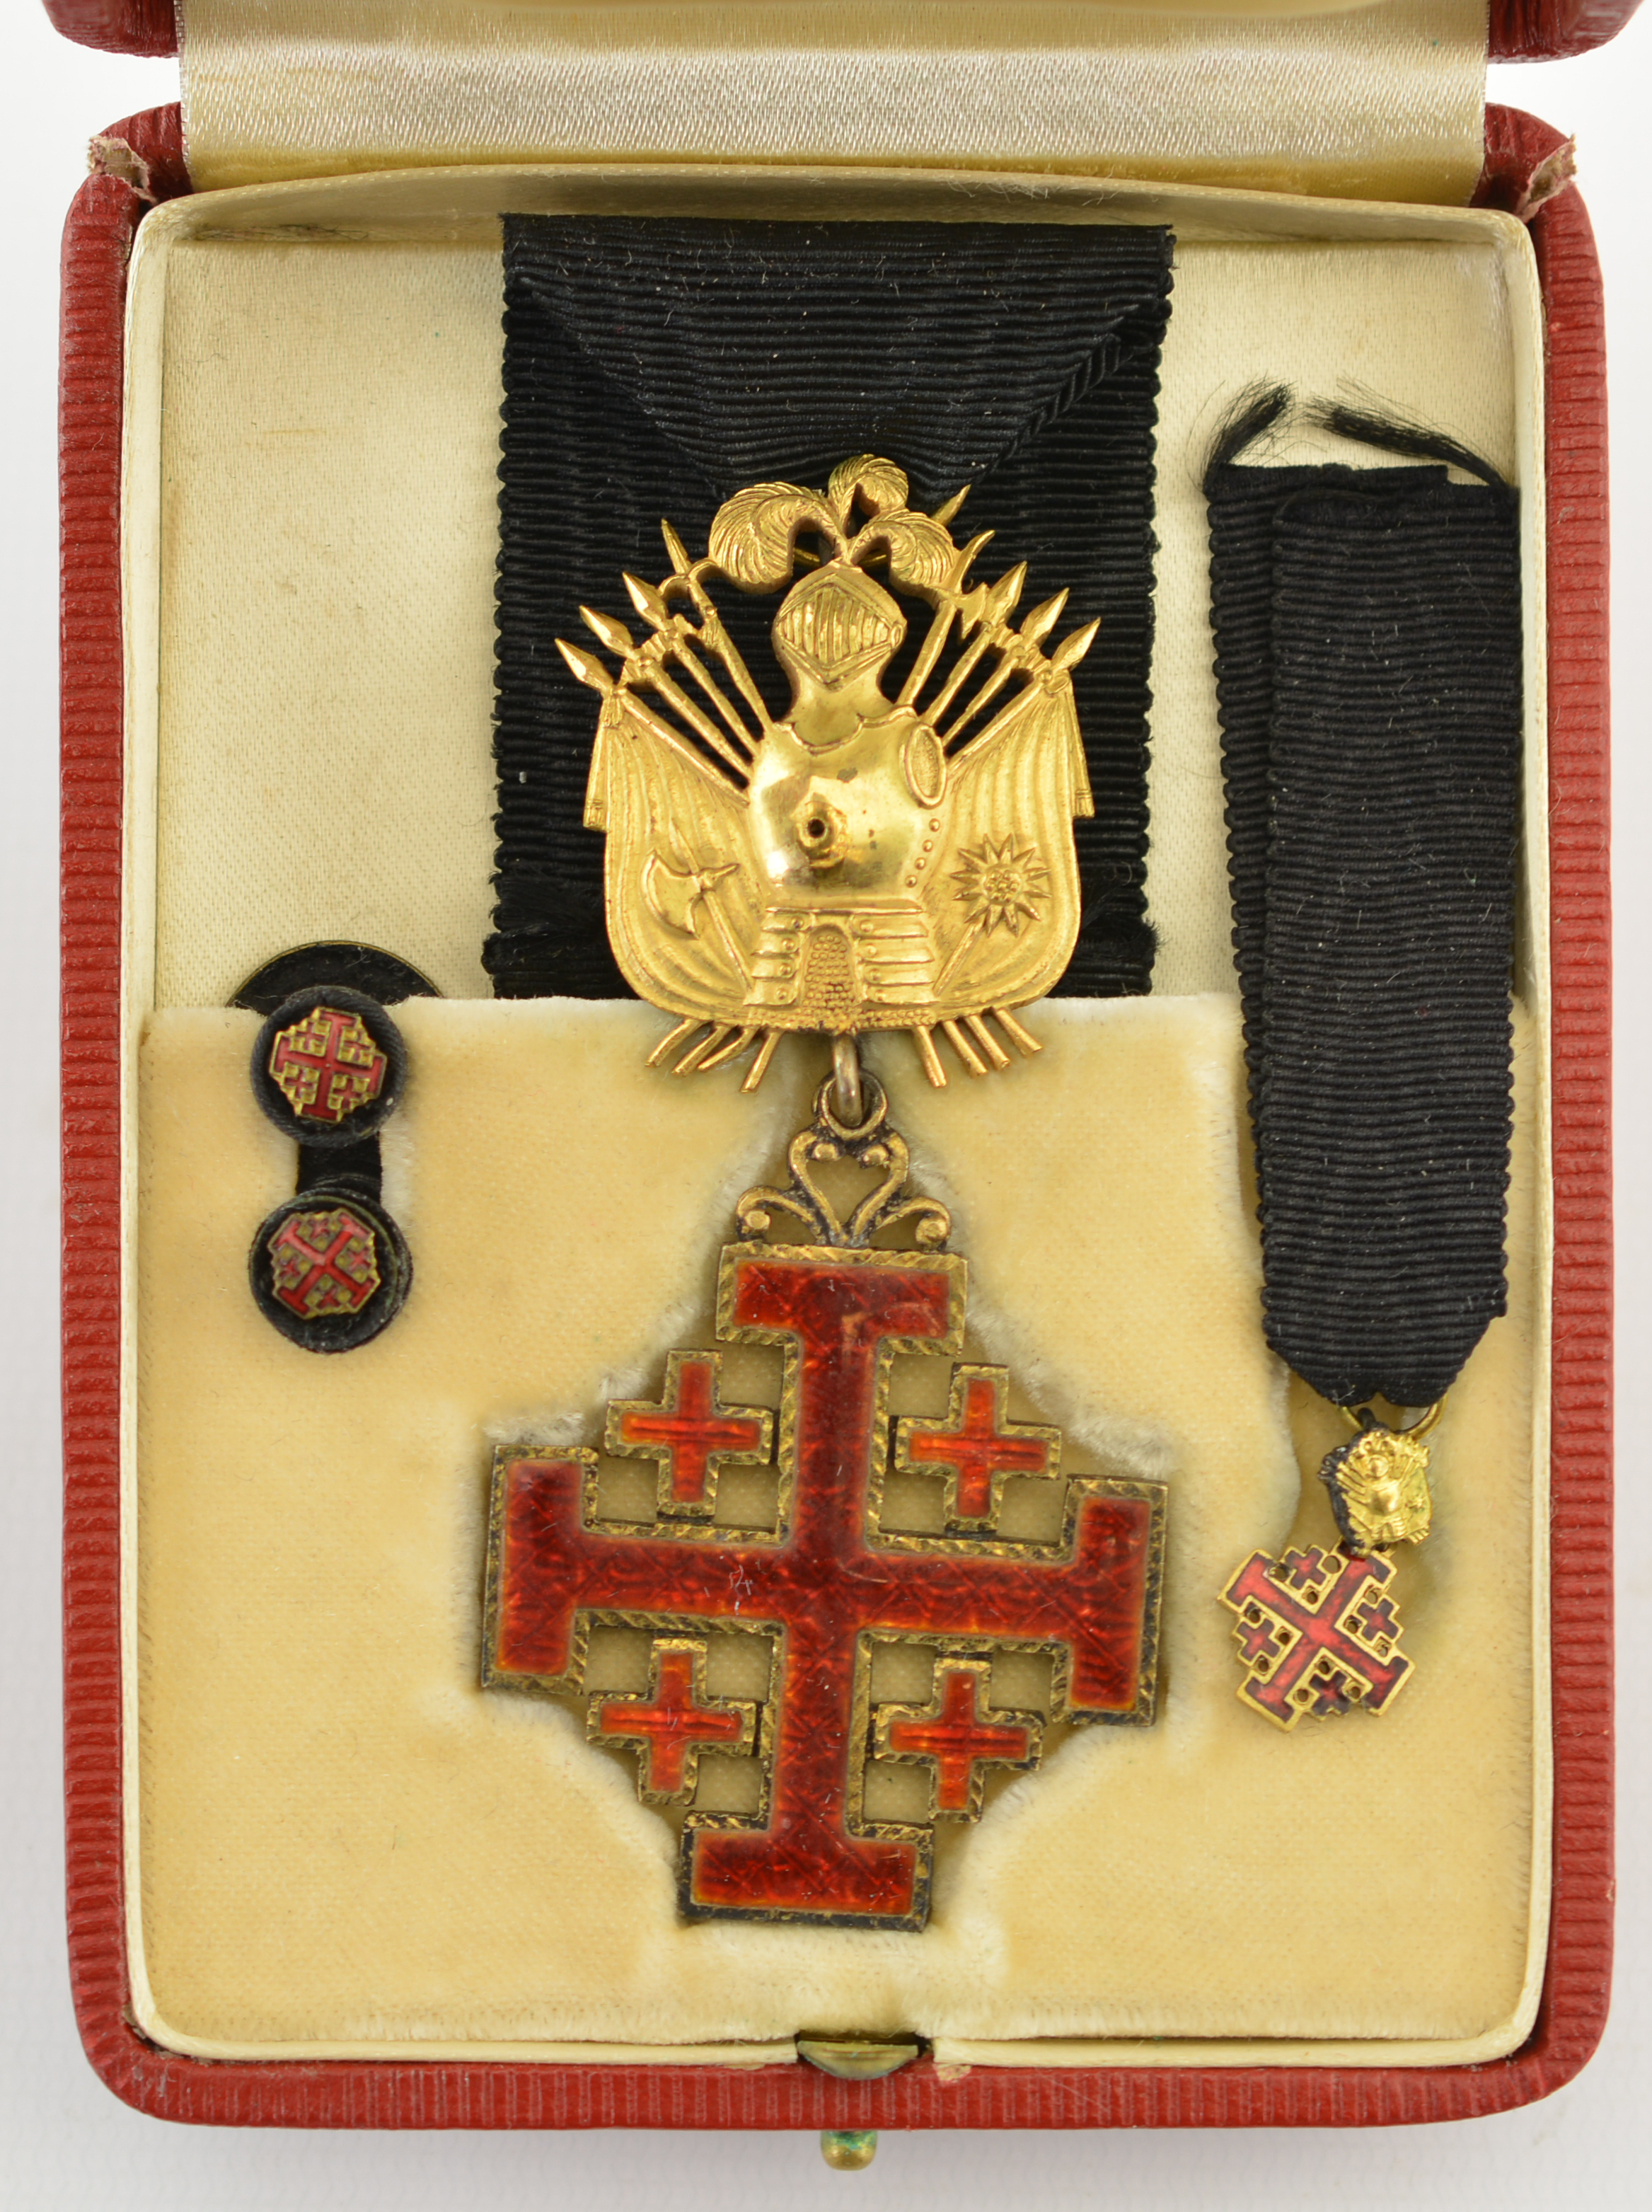 order medal decoration ... rank decoration is nearly identical but is now a neck order). This is a very nice piece of Vatican/Catholic regalia and is in fine condition overall.